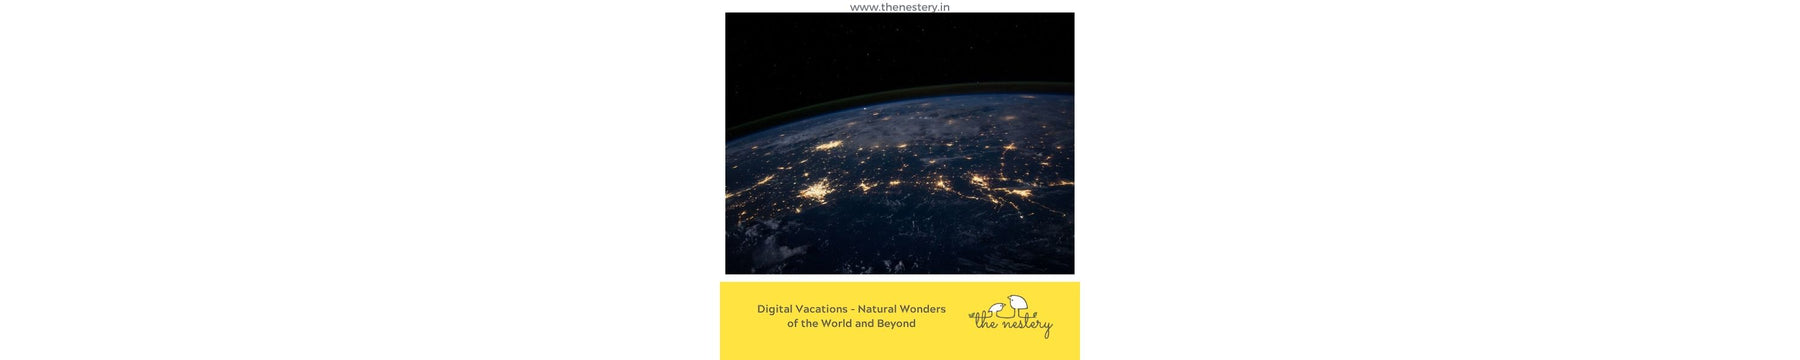 Digital Vacations Part 3- Natural Wonders of the World and Beyond